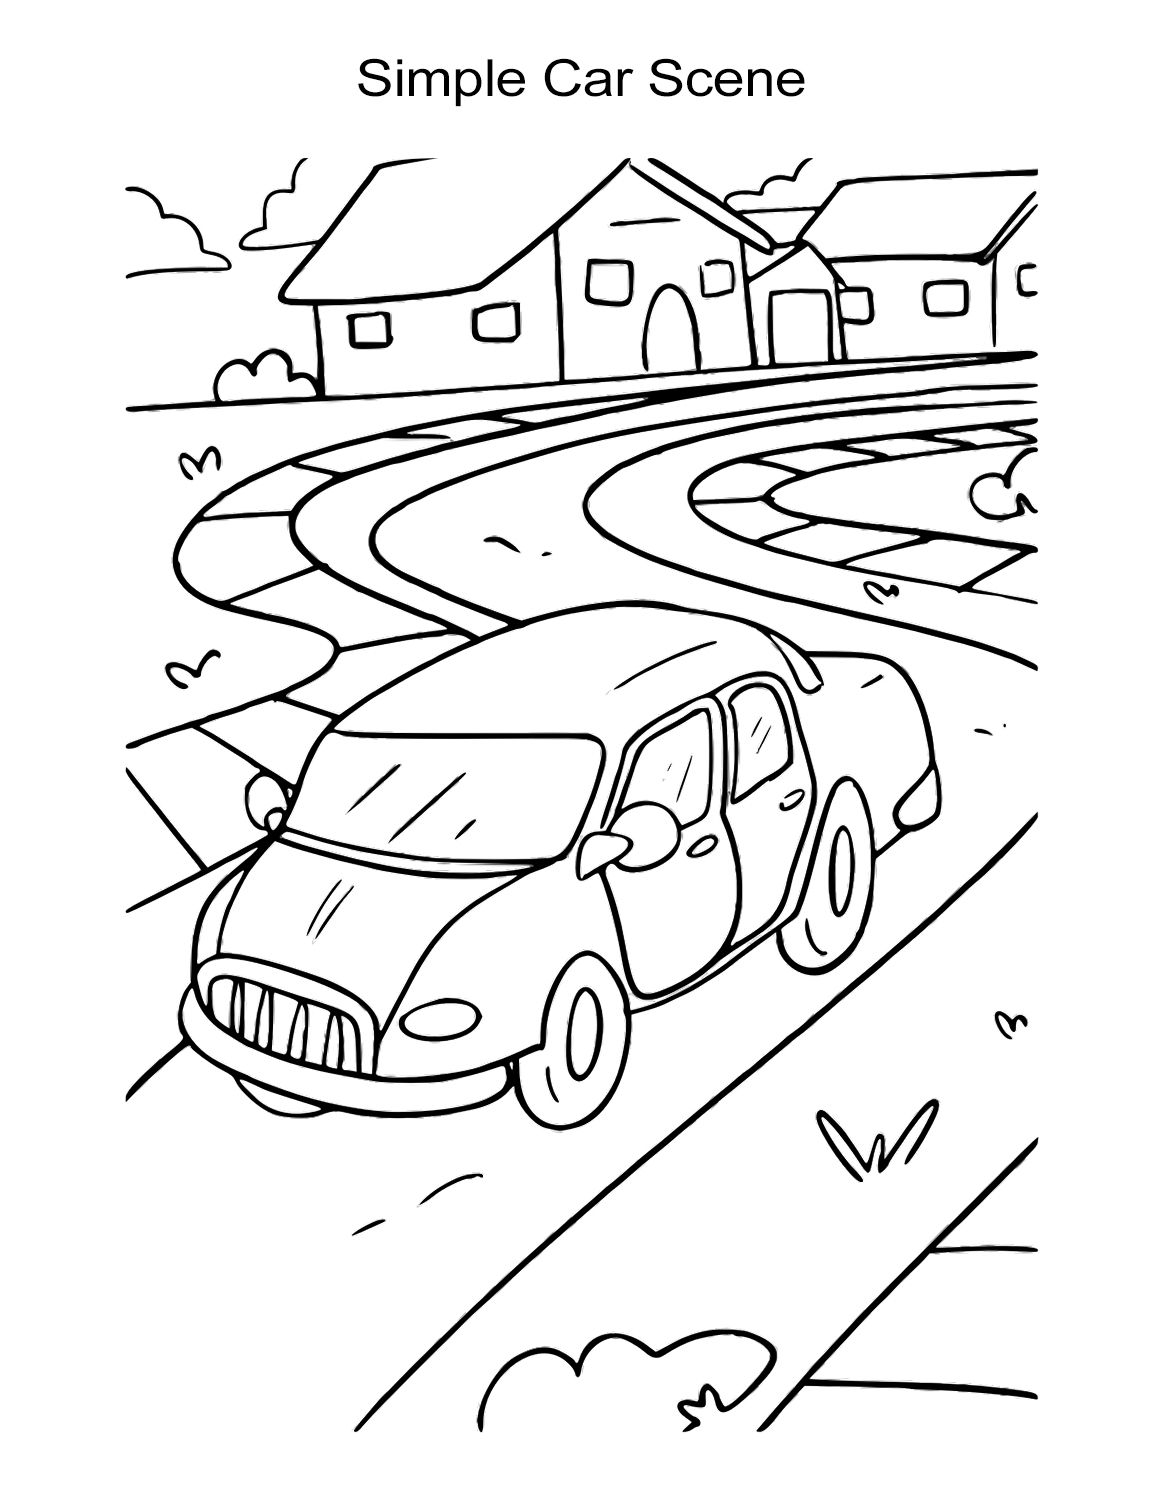 10 car coloring sheets sports muscle racing cars and more all esl Cars Ffhgdtfdssetffdzxgftetdsydc car coloring page